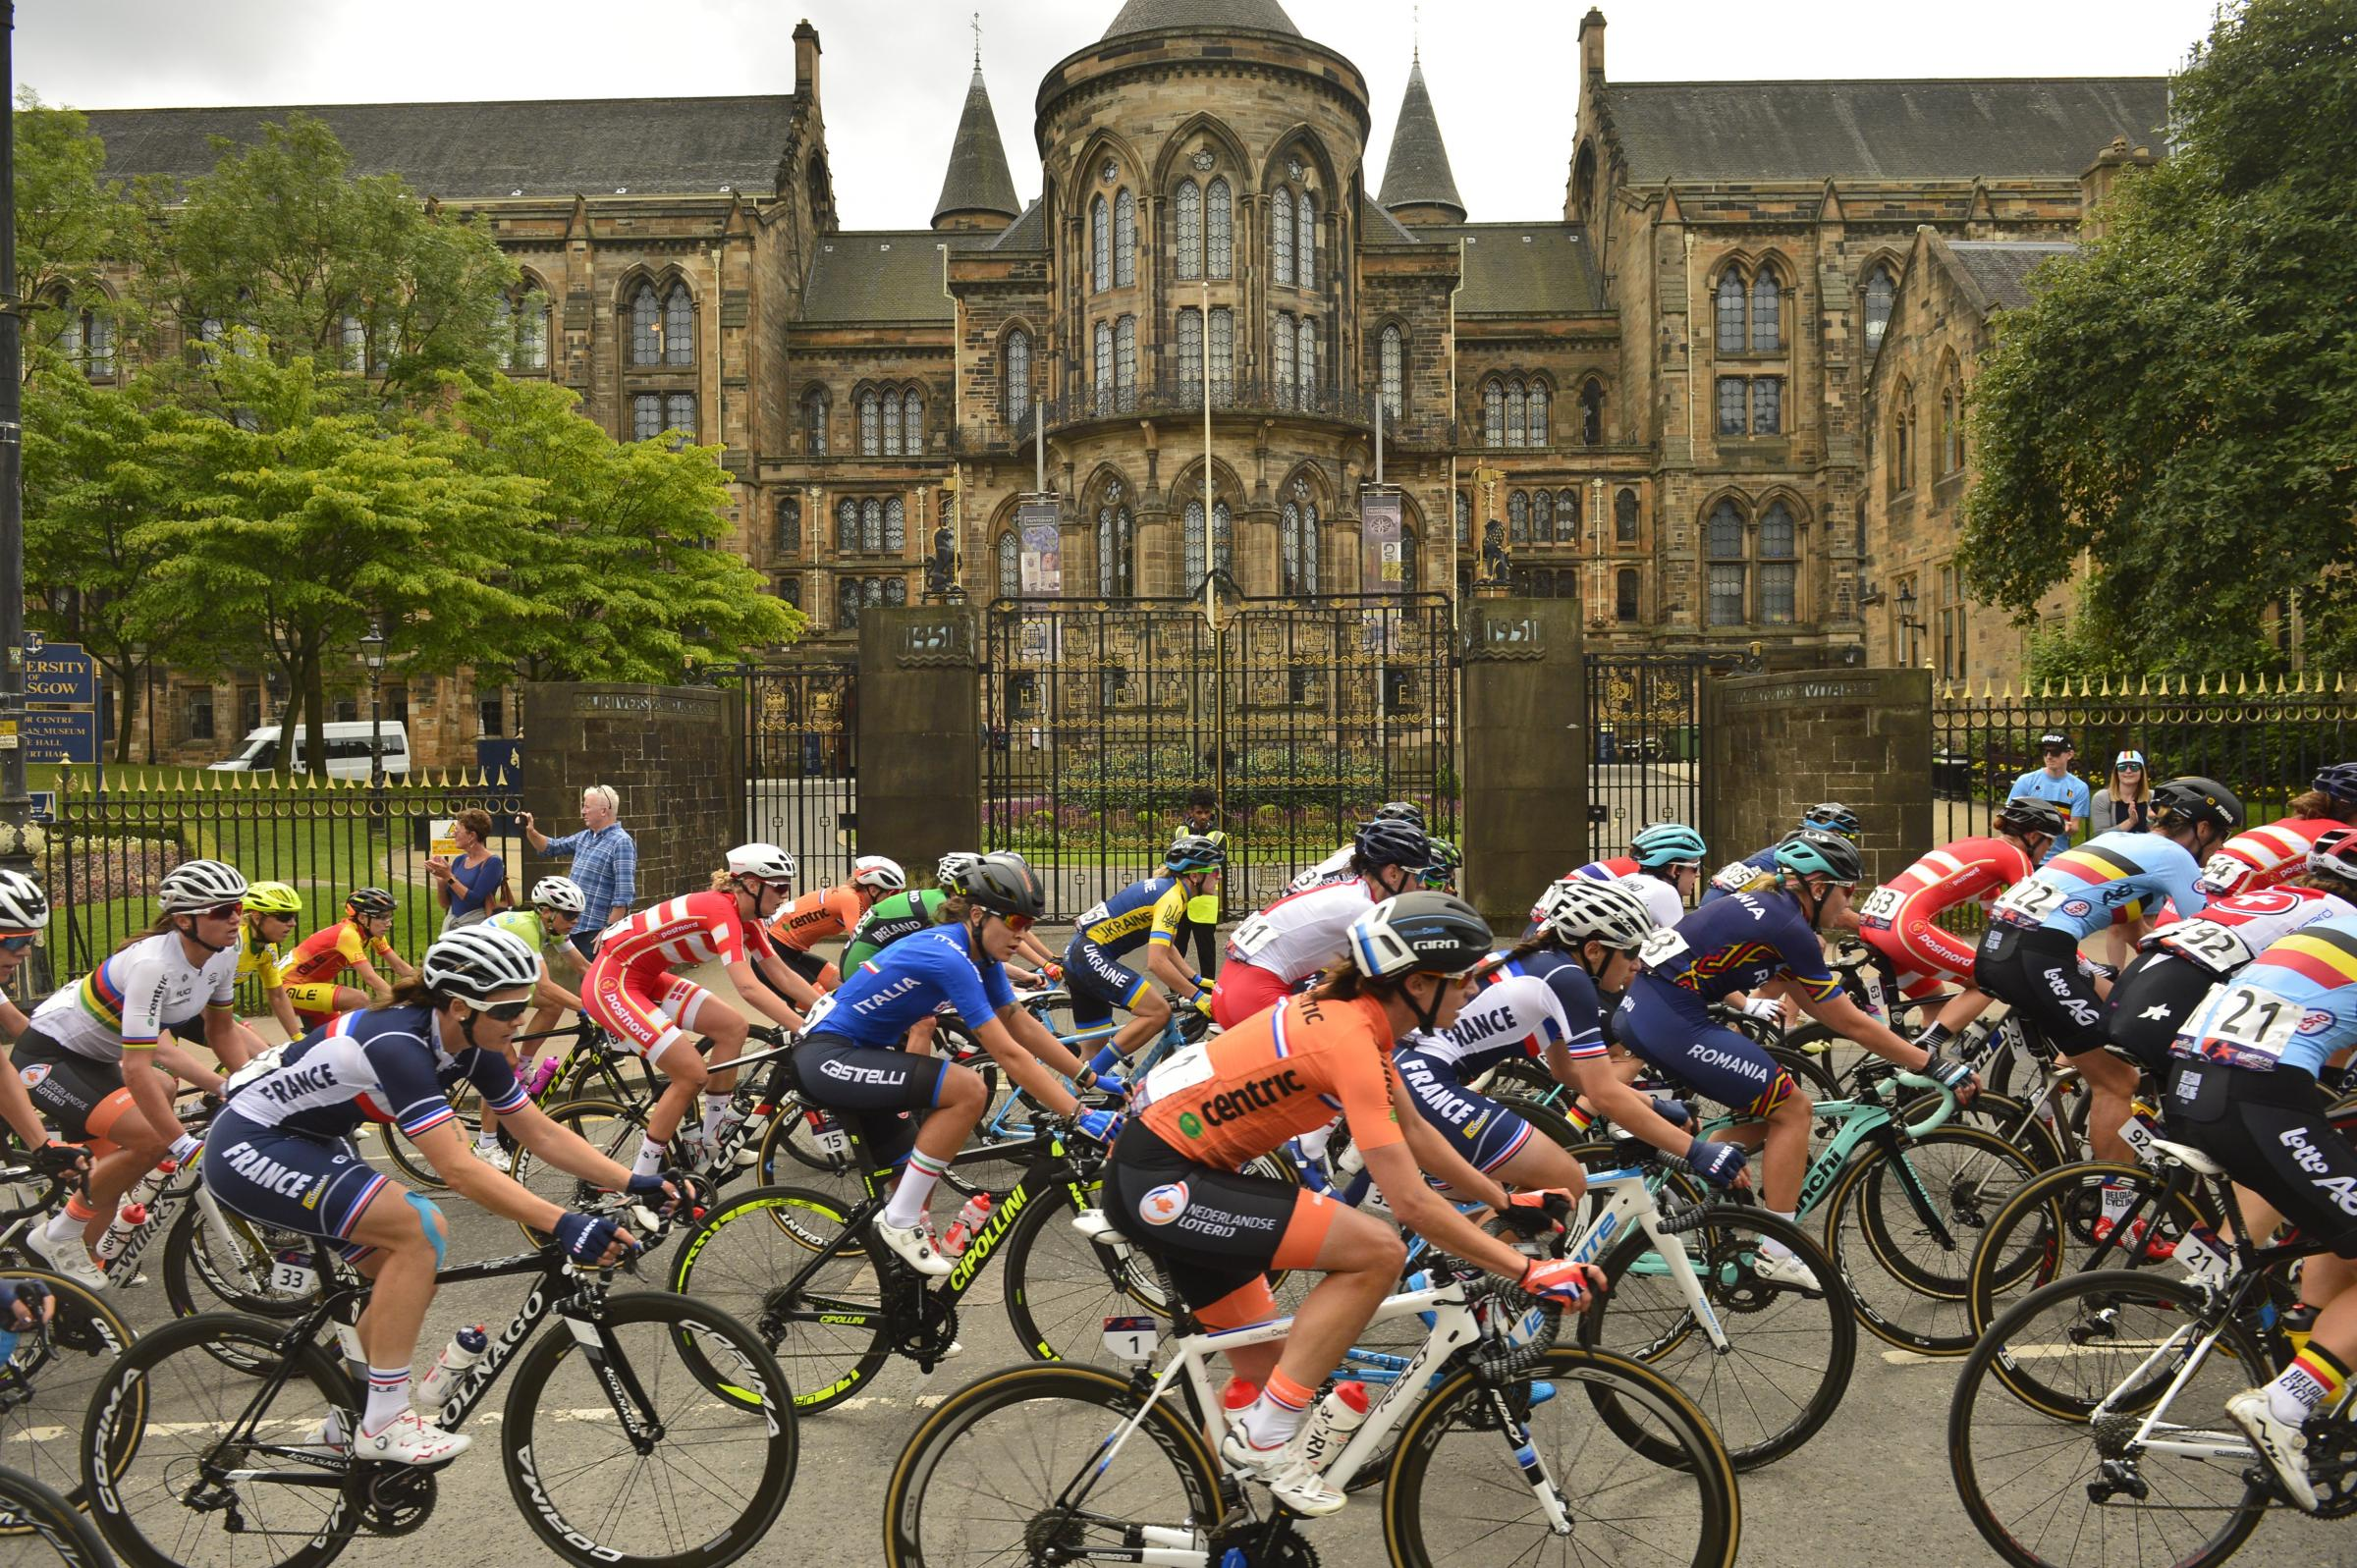 The participants passed some notable Glasgow landmarks. Photograph: Jamie Simpson